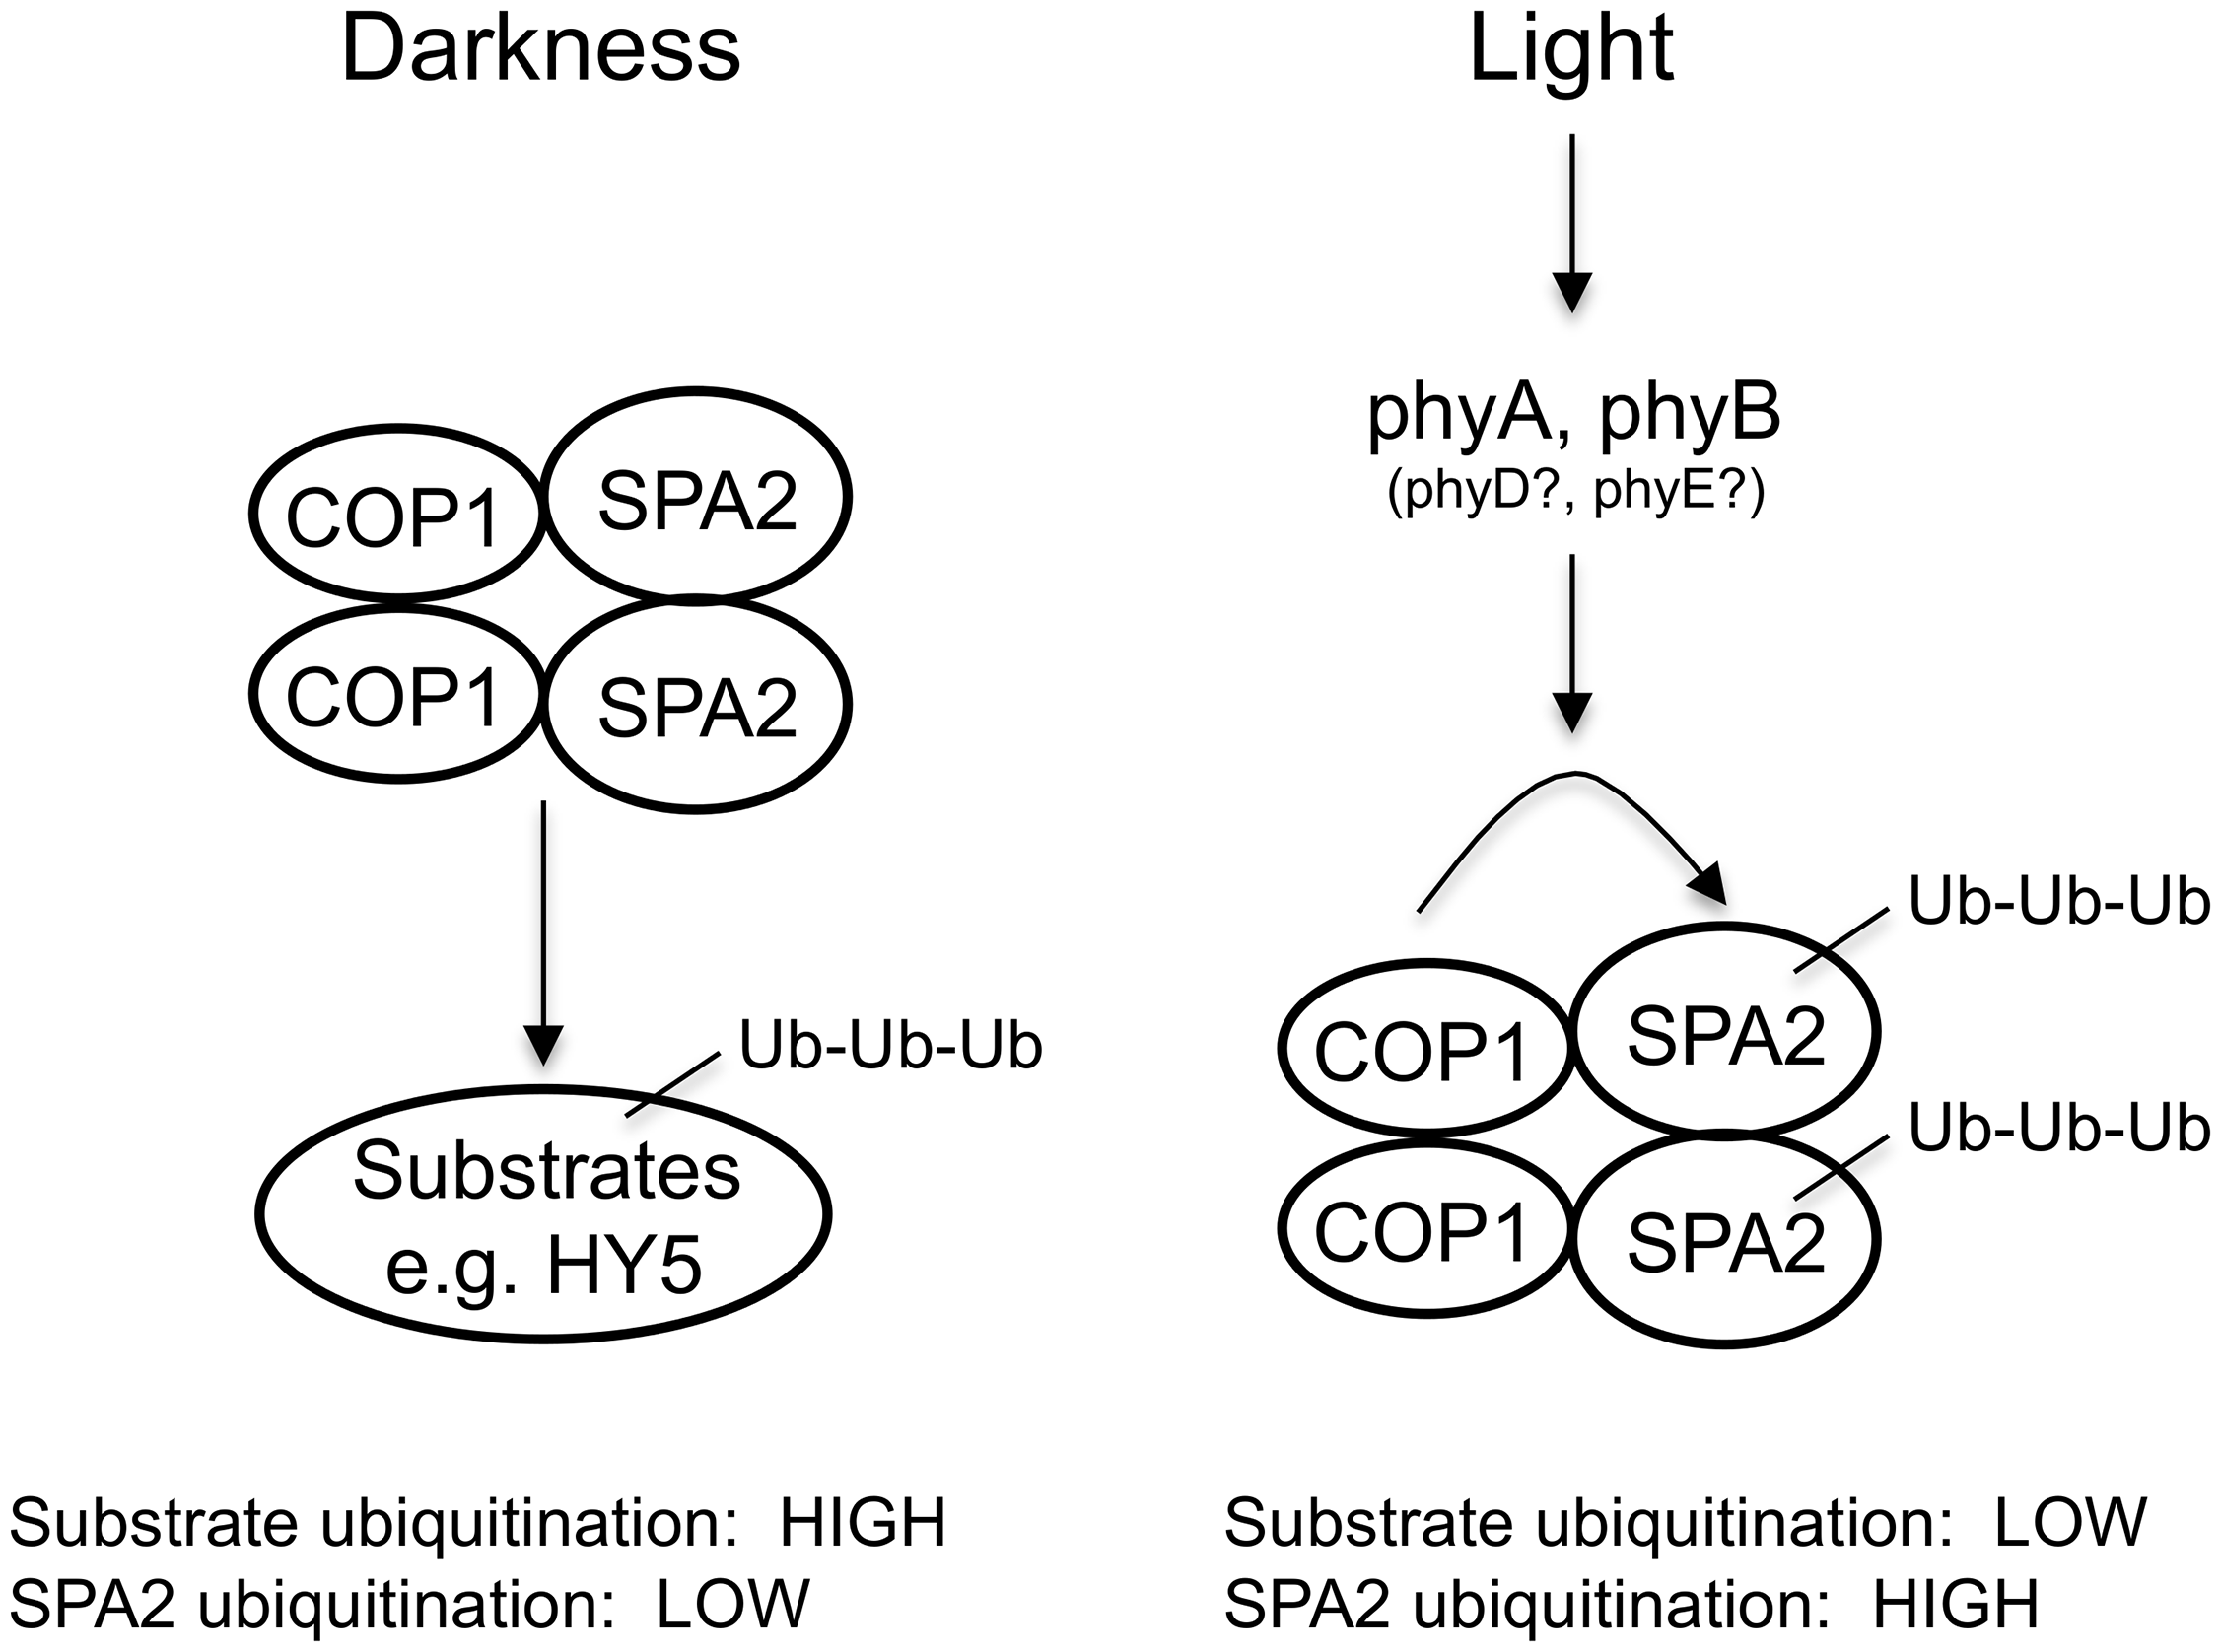 Model for the effect of light on the ubiquitination activities of the COP1/SPA2 E3 ubiquitin ligase.